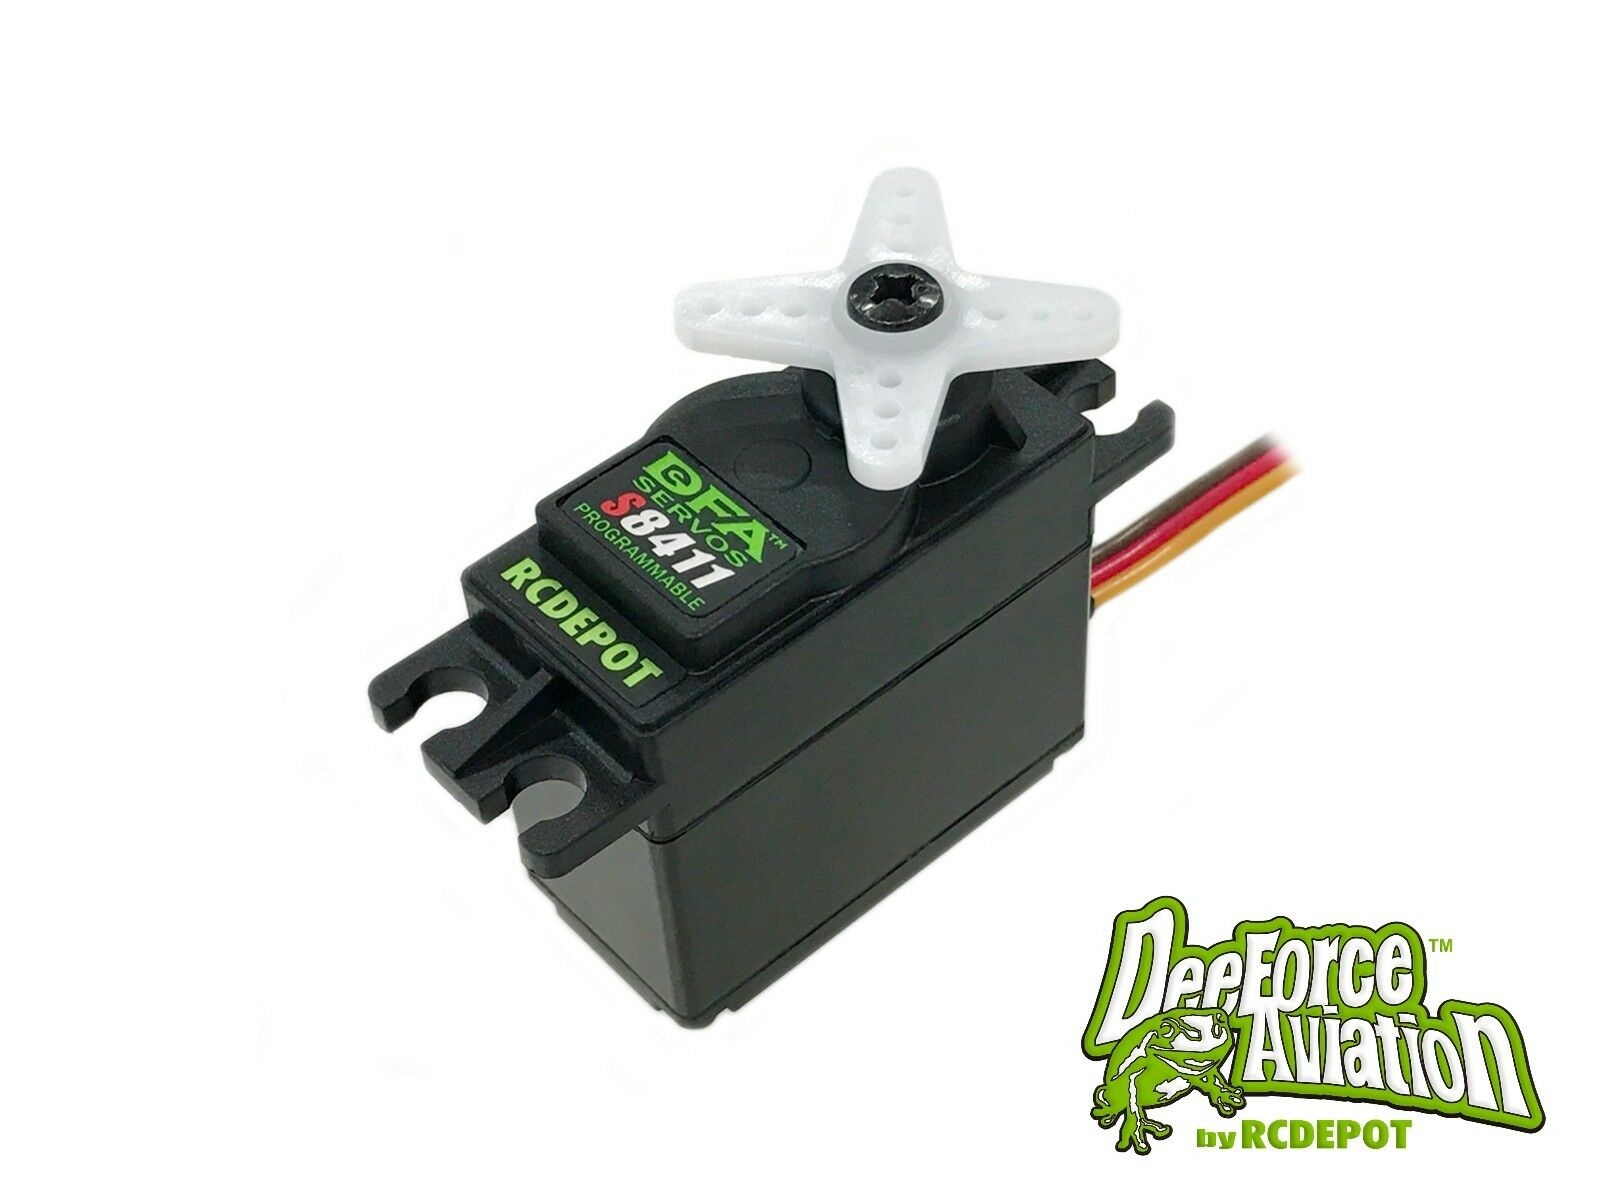 JR DFA S8411 programmable Servo (Dee Force Aviation   JR PROPO   RC DEPOT)